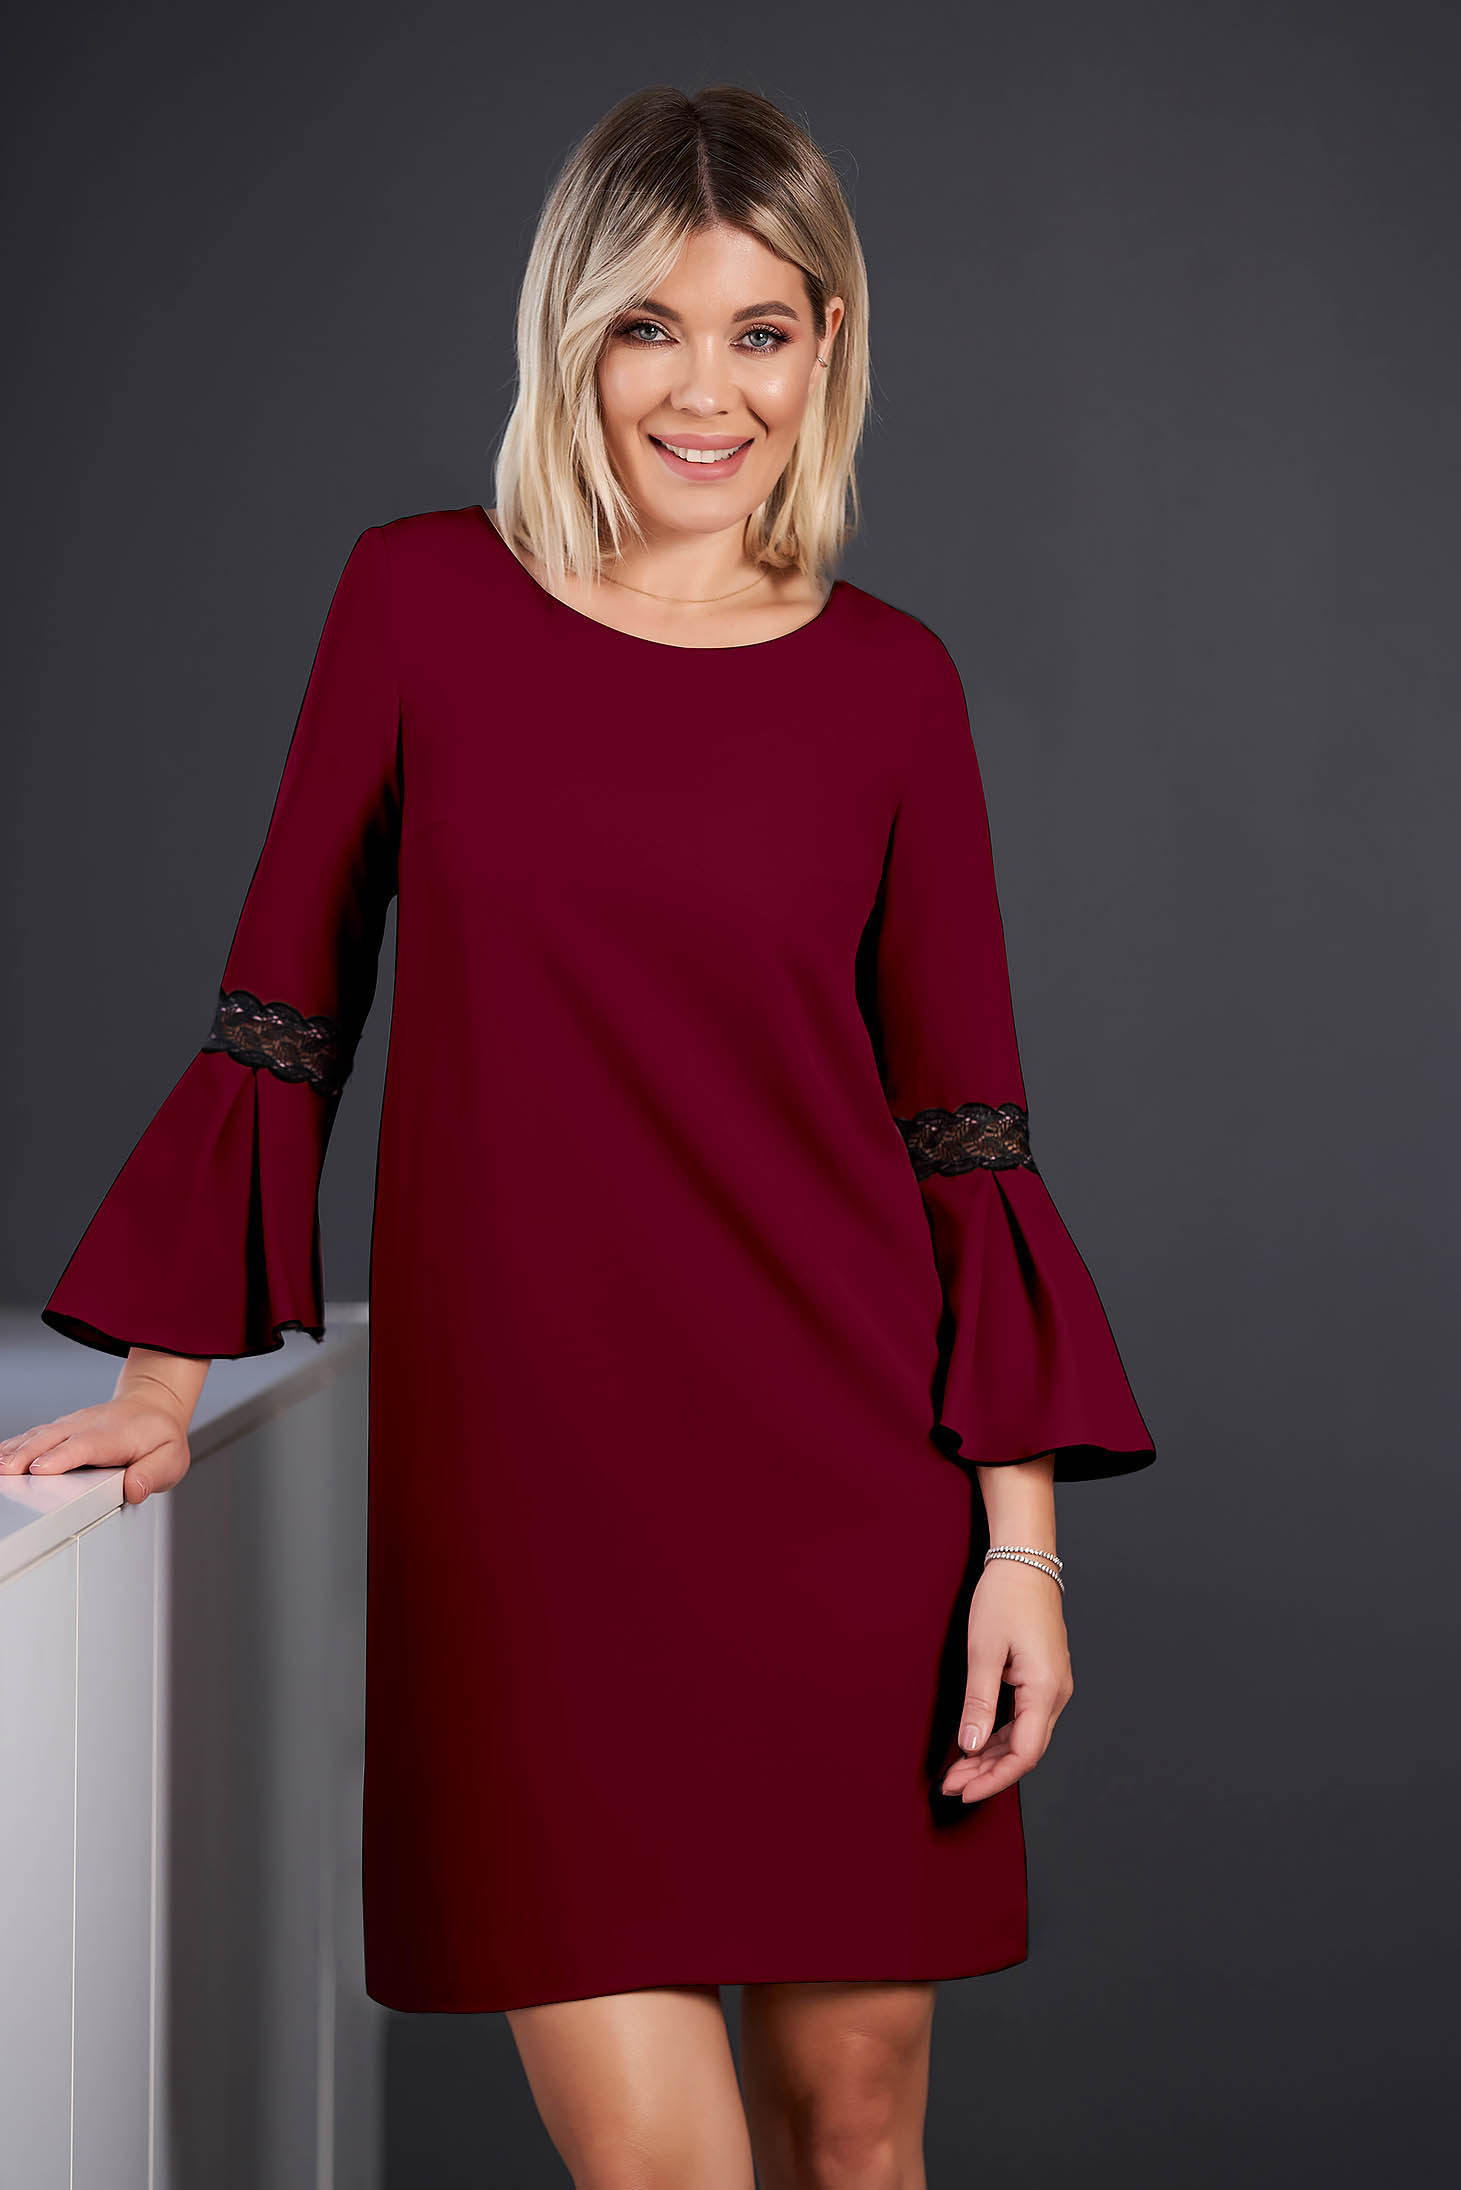 StarShinerS burgundy dress elegant short cut cloth neckline with 3/4 sleeves with bell sleeve with embroidery details